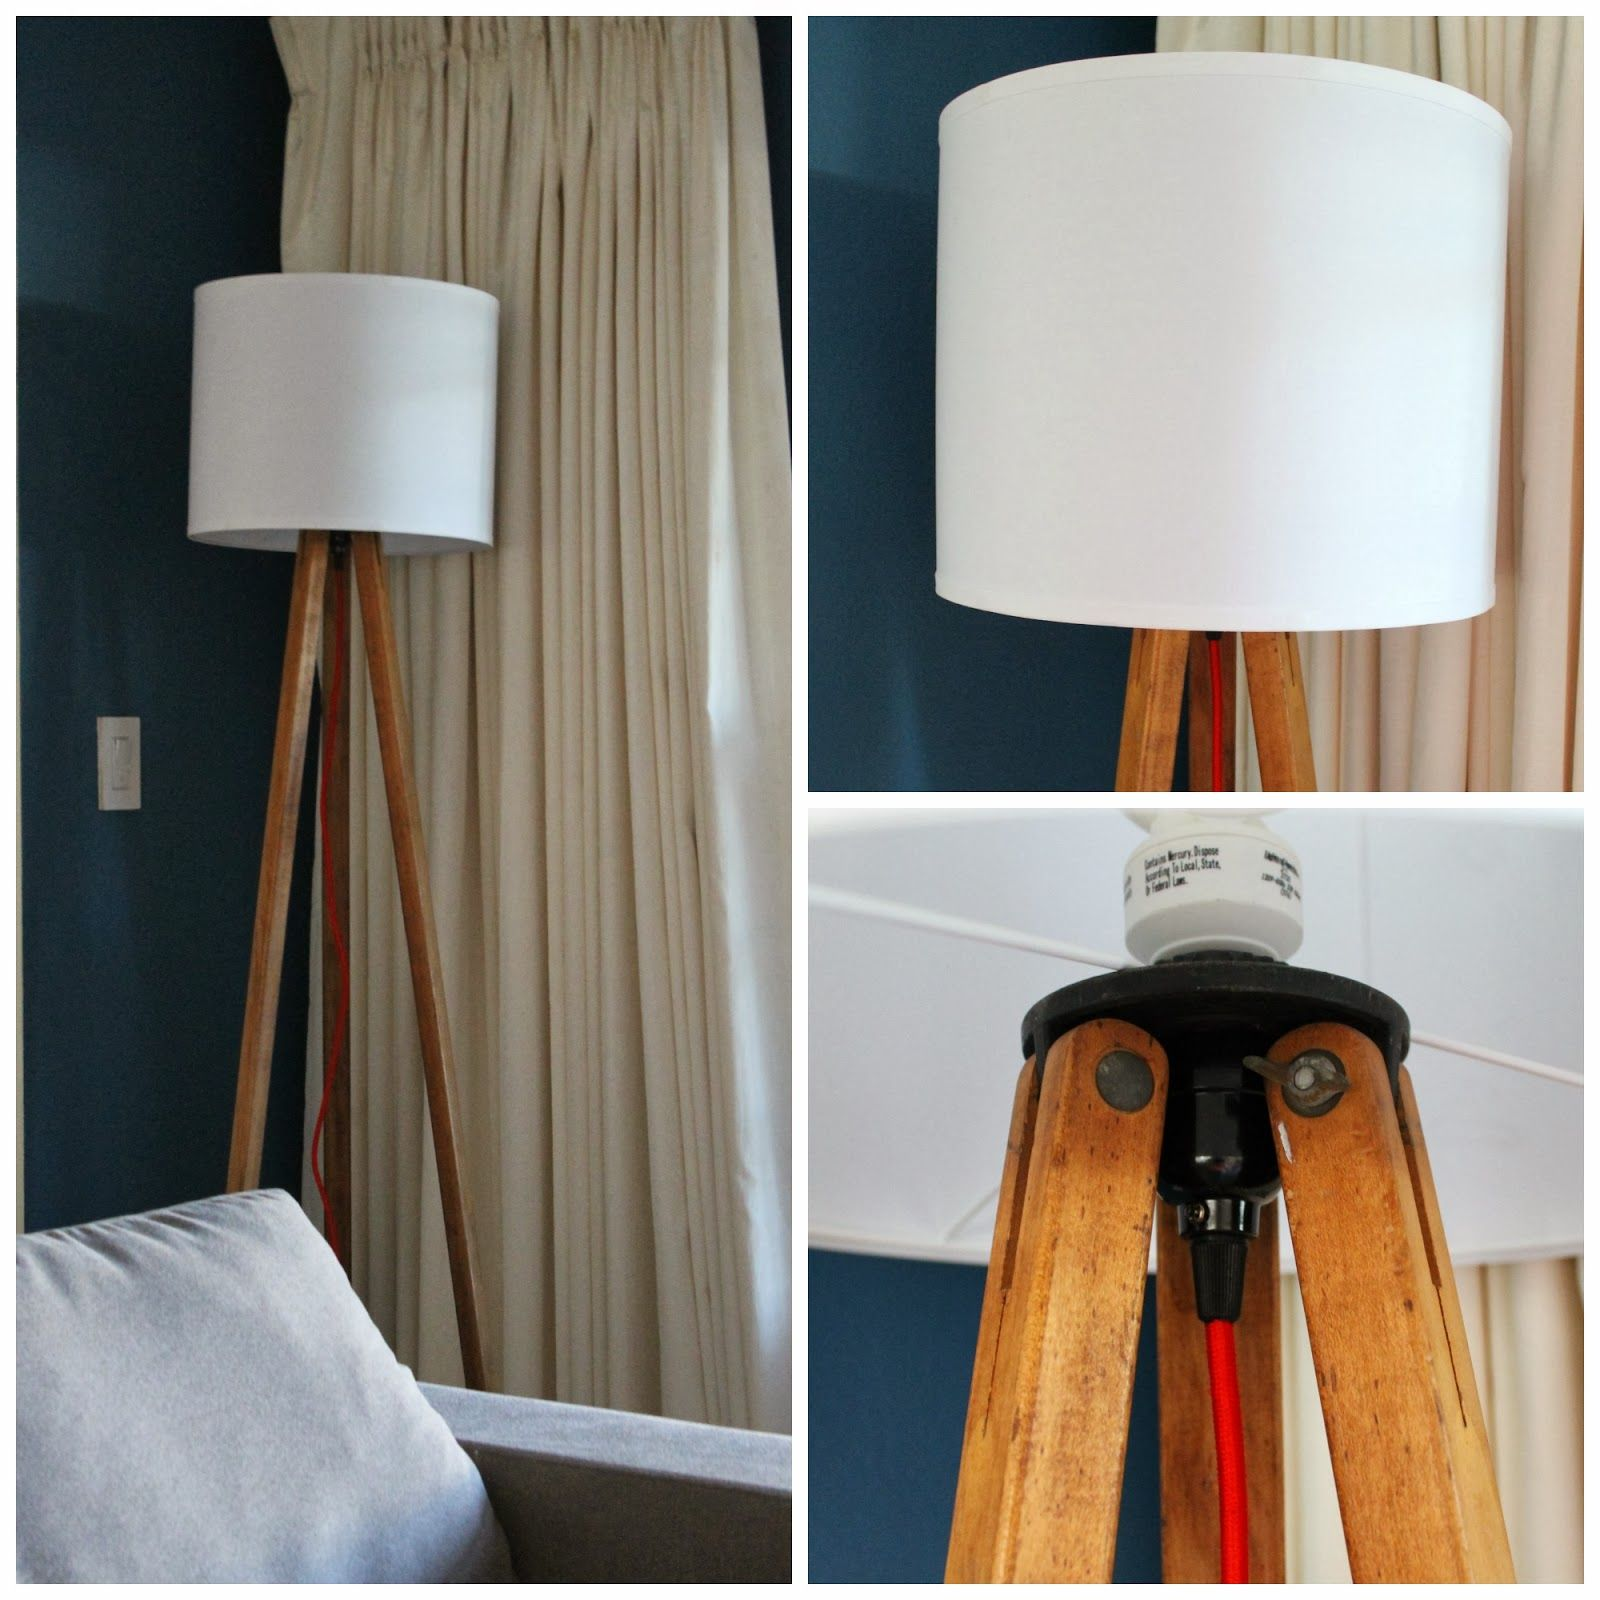 DelightFULL Hello Beautiful Tripod floor lamp DIY